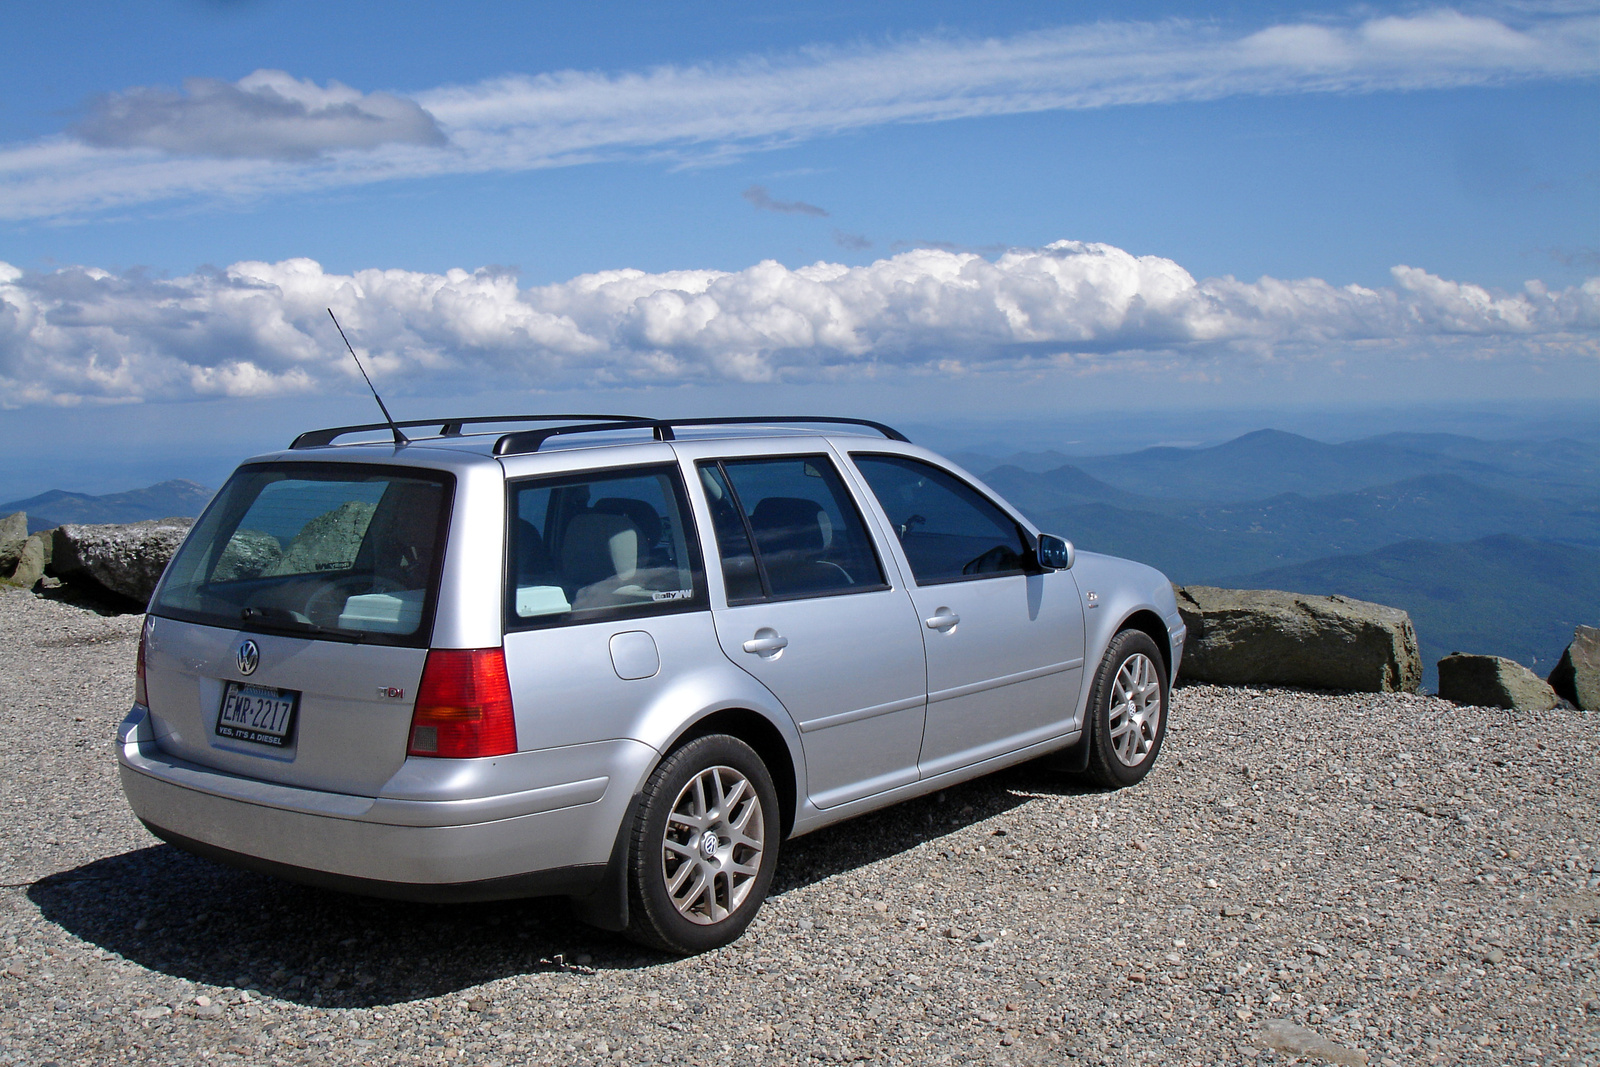 2008 volkswagen jetta iv wagon pictures information and specs auto. Black Bedroom Furniture Sets. Home Design Ideas